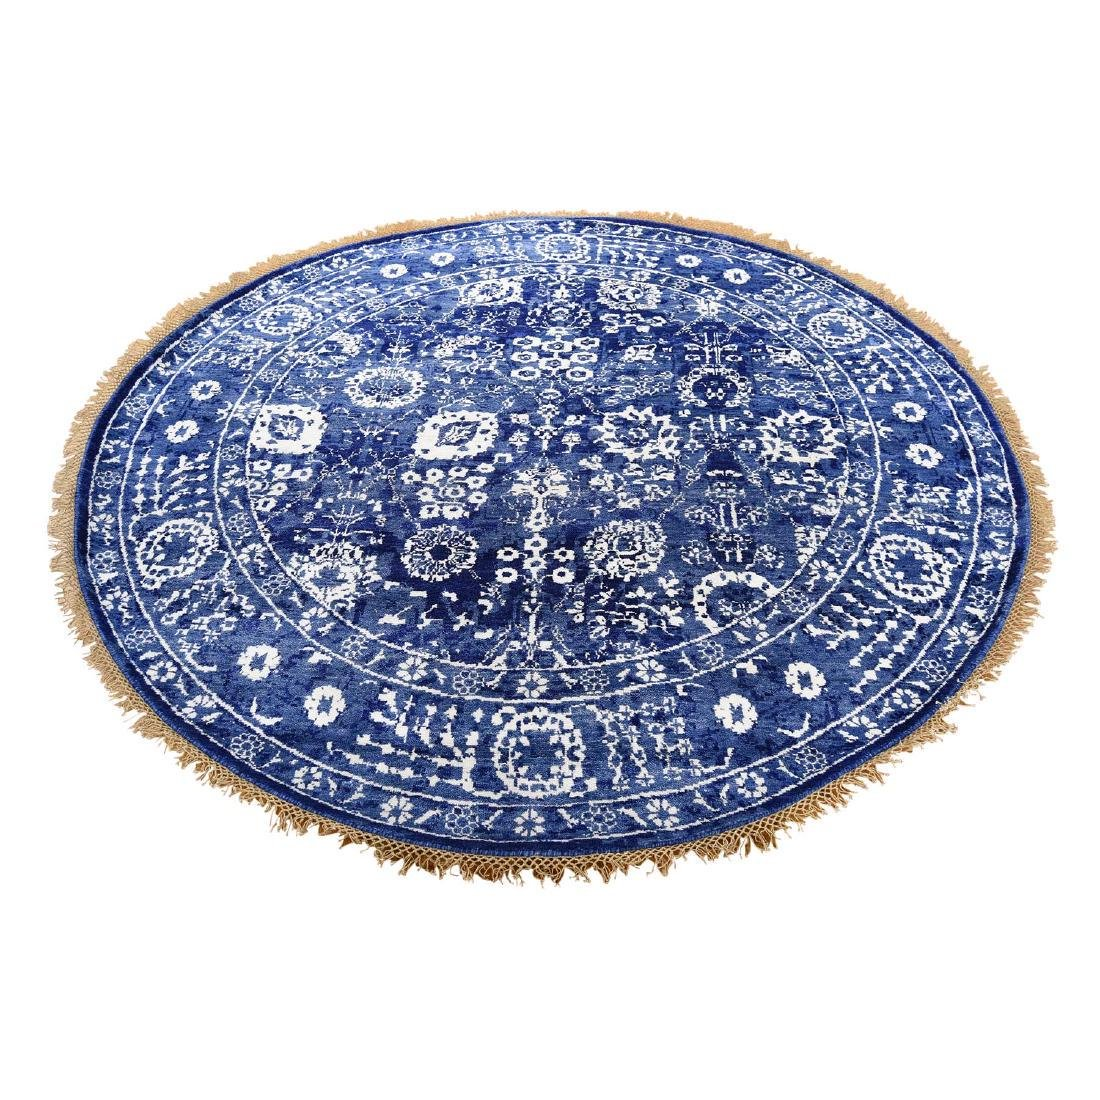 Hand-Knotted Tabriz Tone on Tone Round Wool and Silk